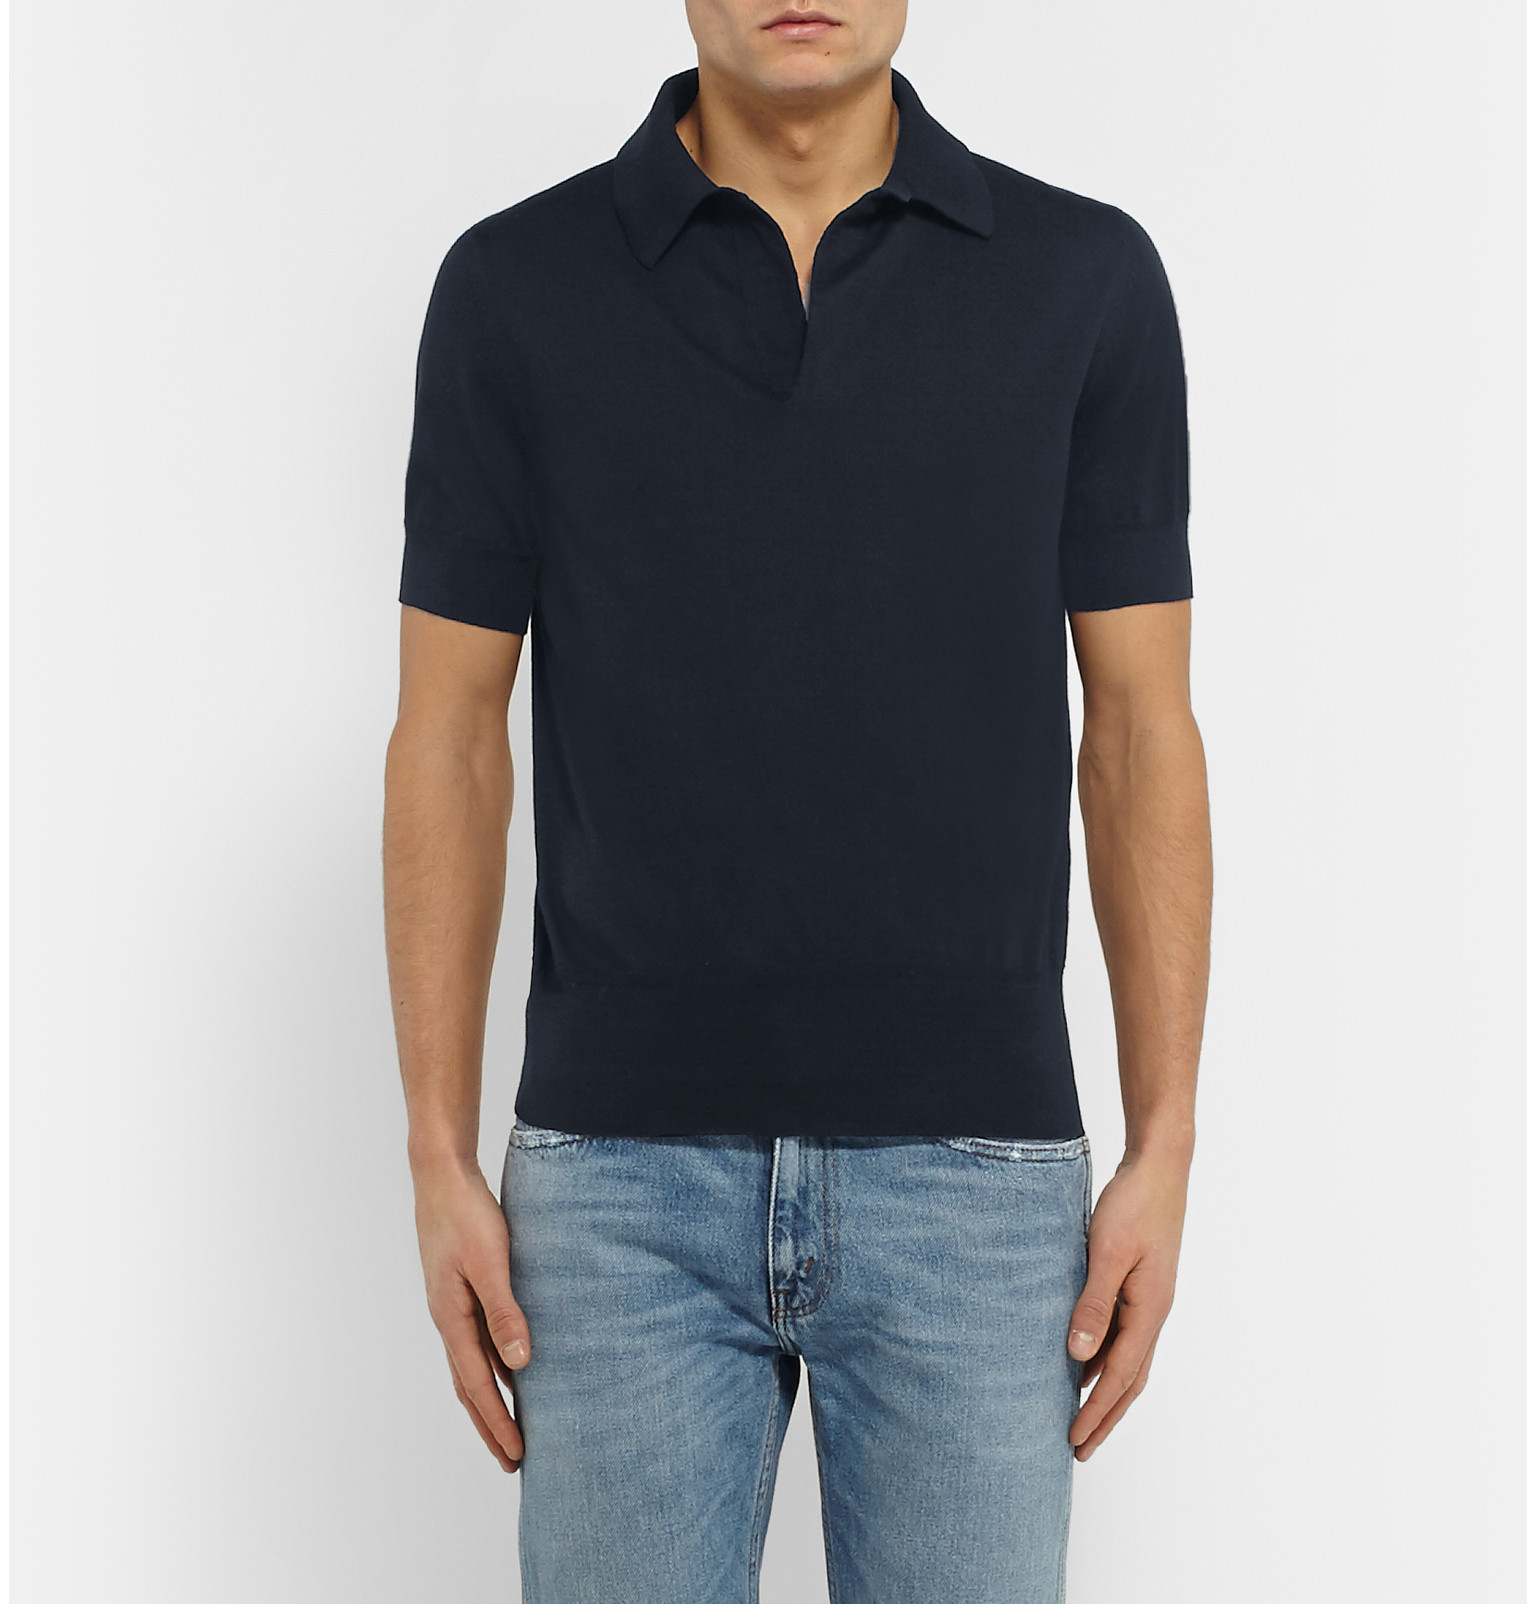 Tom Ford Knitted Cotton Polo Shirt in Blue for Men